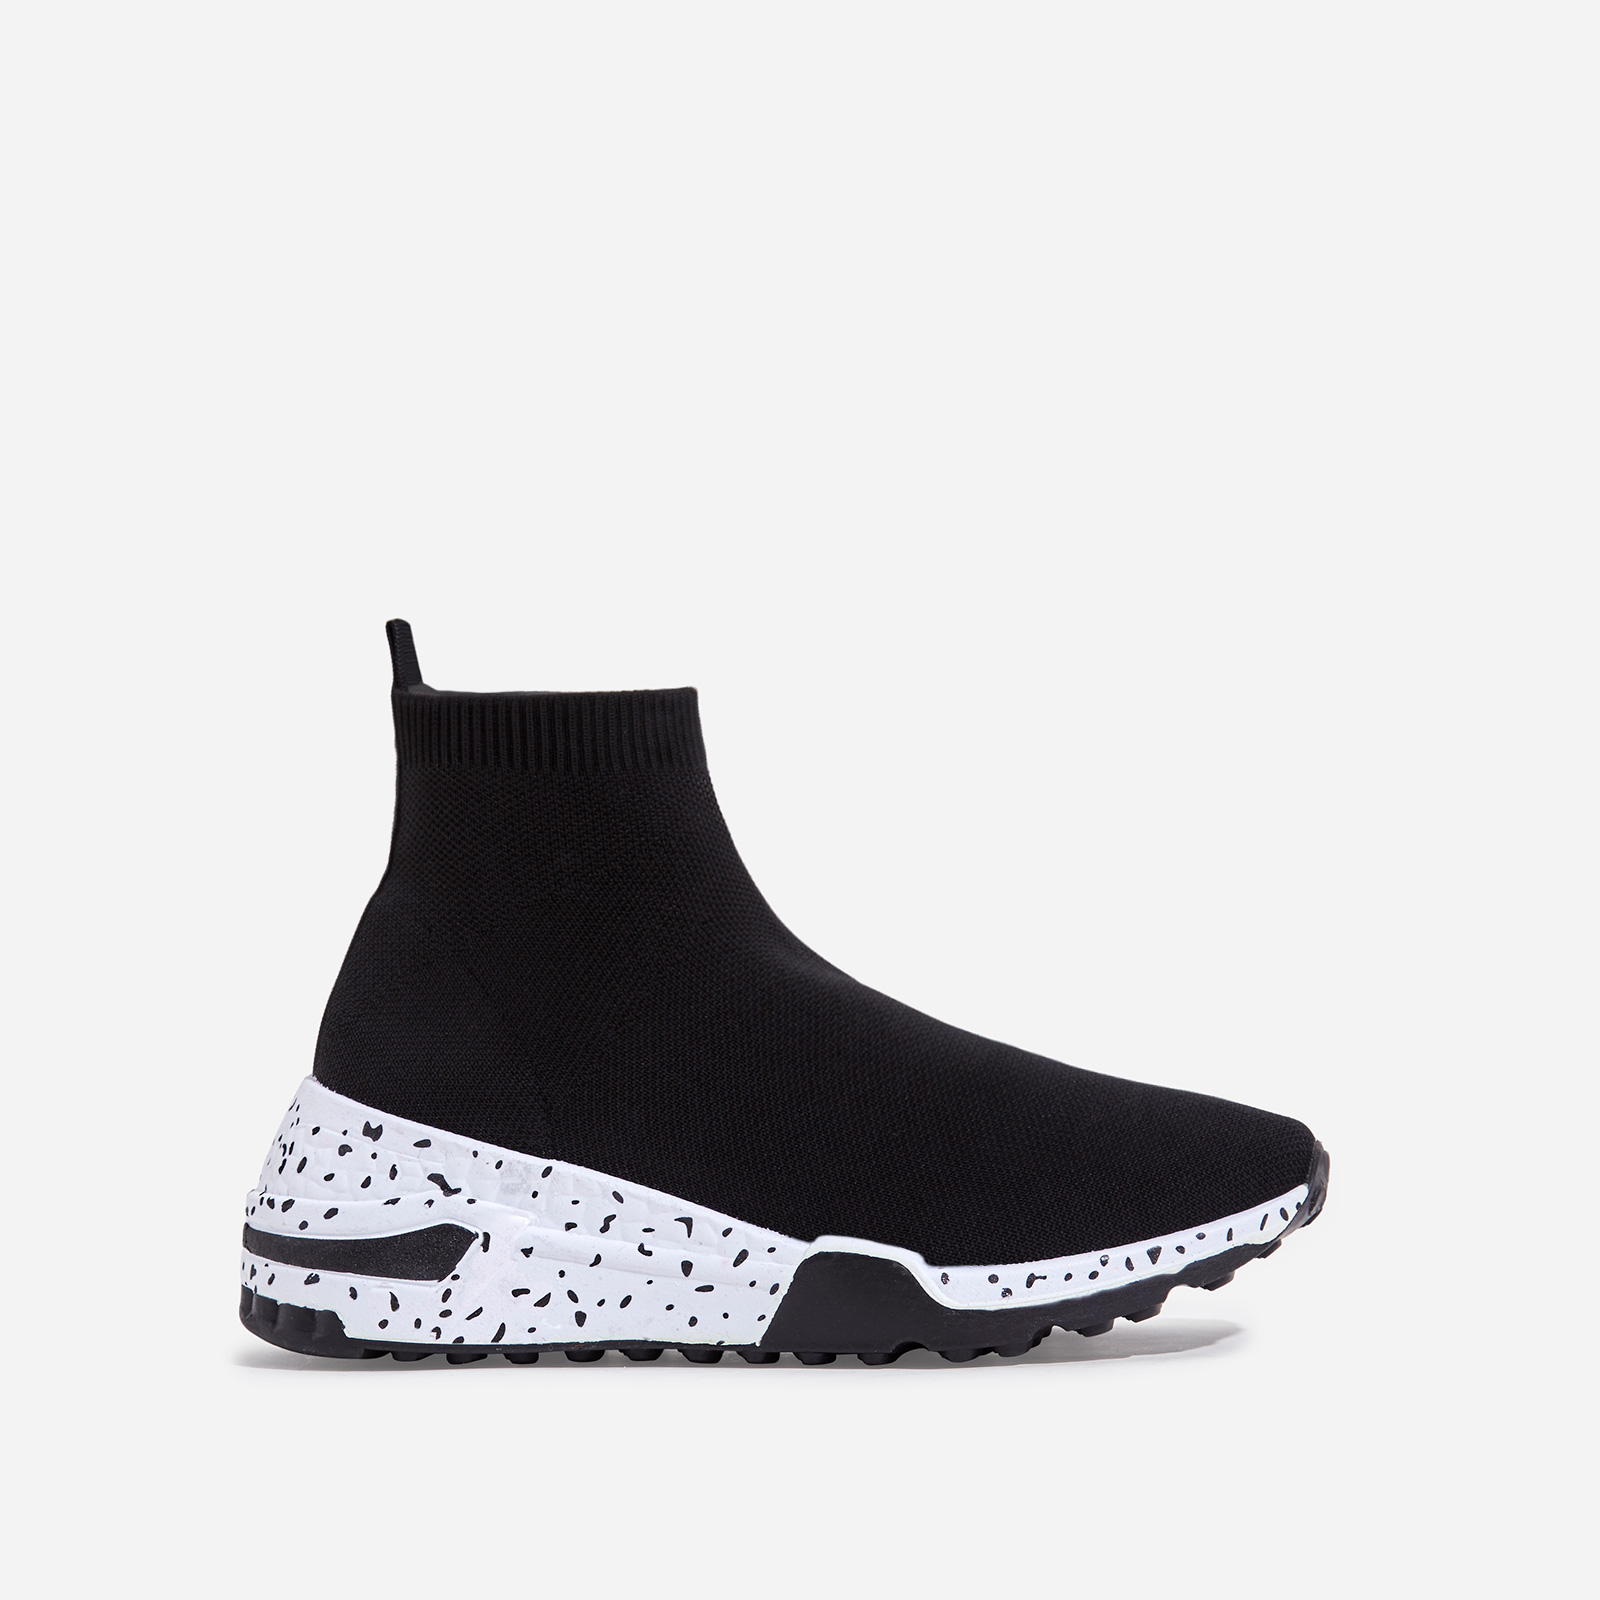 Mint Speckle Print Chunky Sole Sock Sneaker In Black Knit